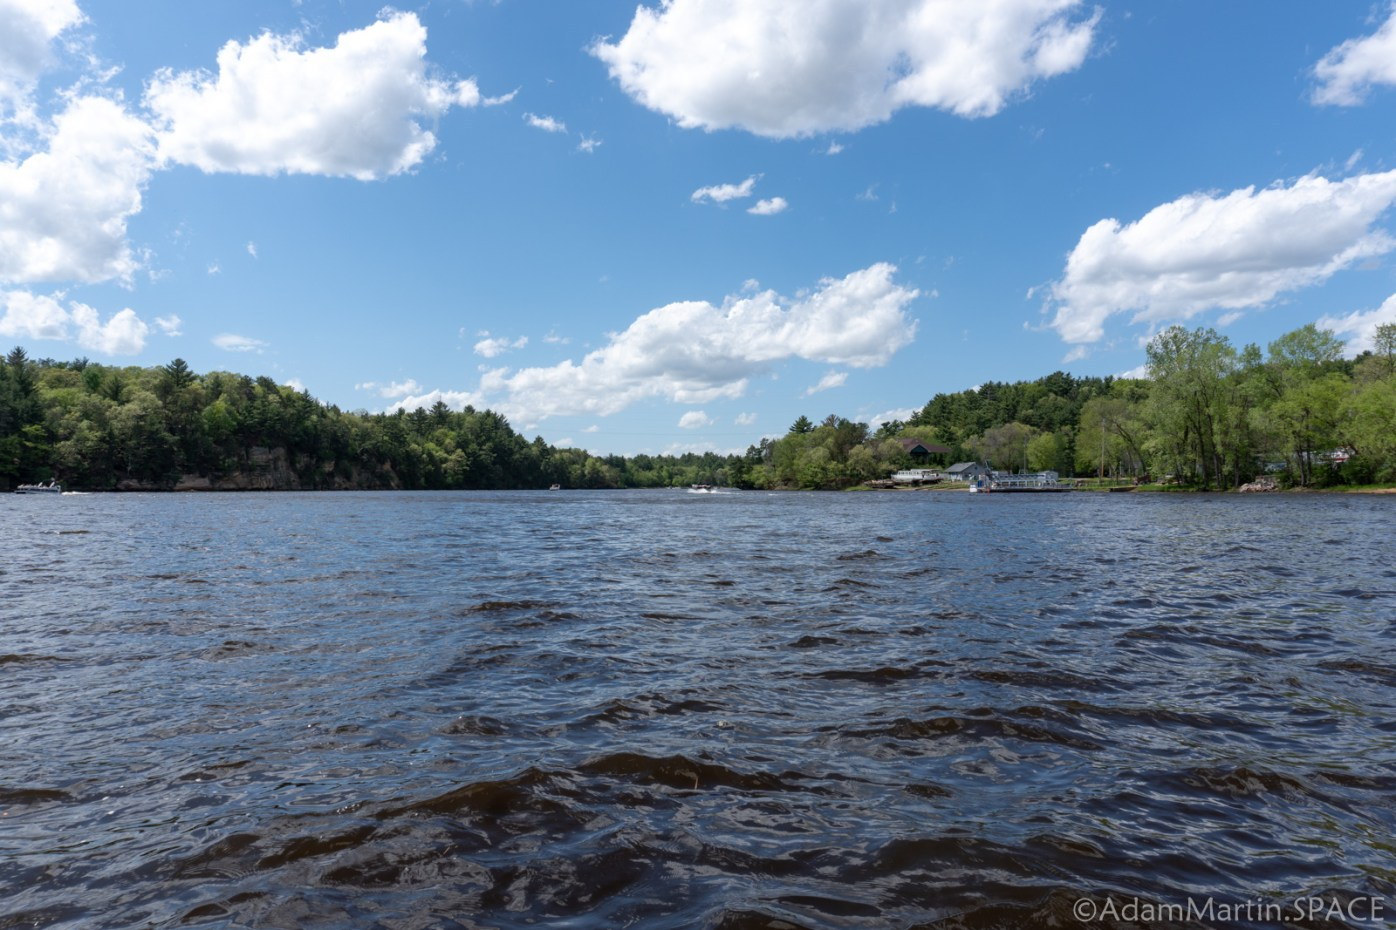 Dells of the Wisconsin River - River Views from Start of the Tour